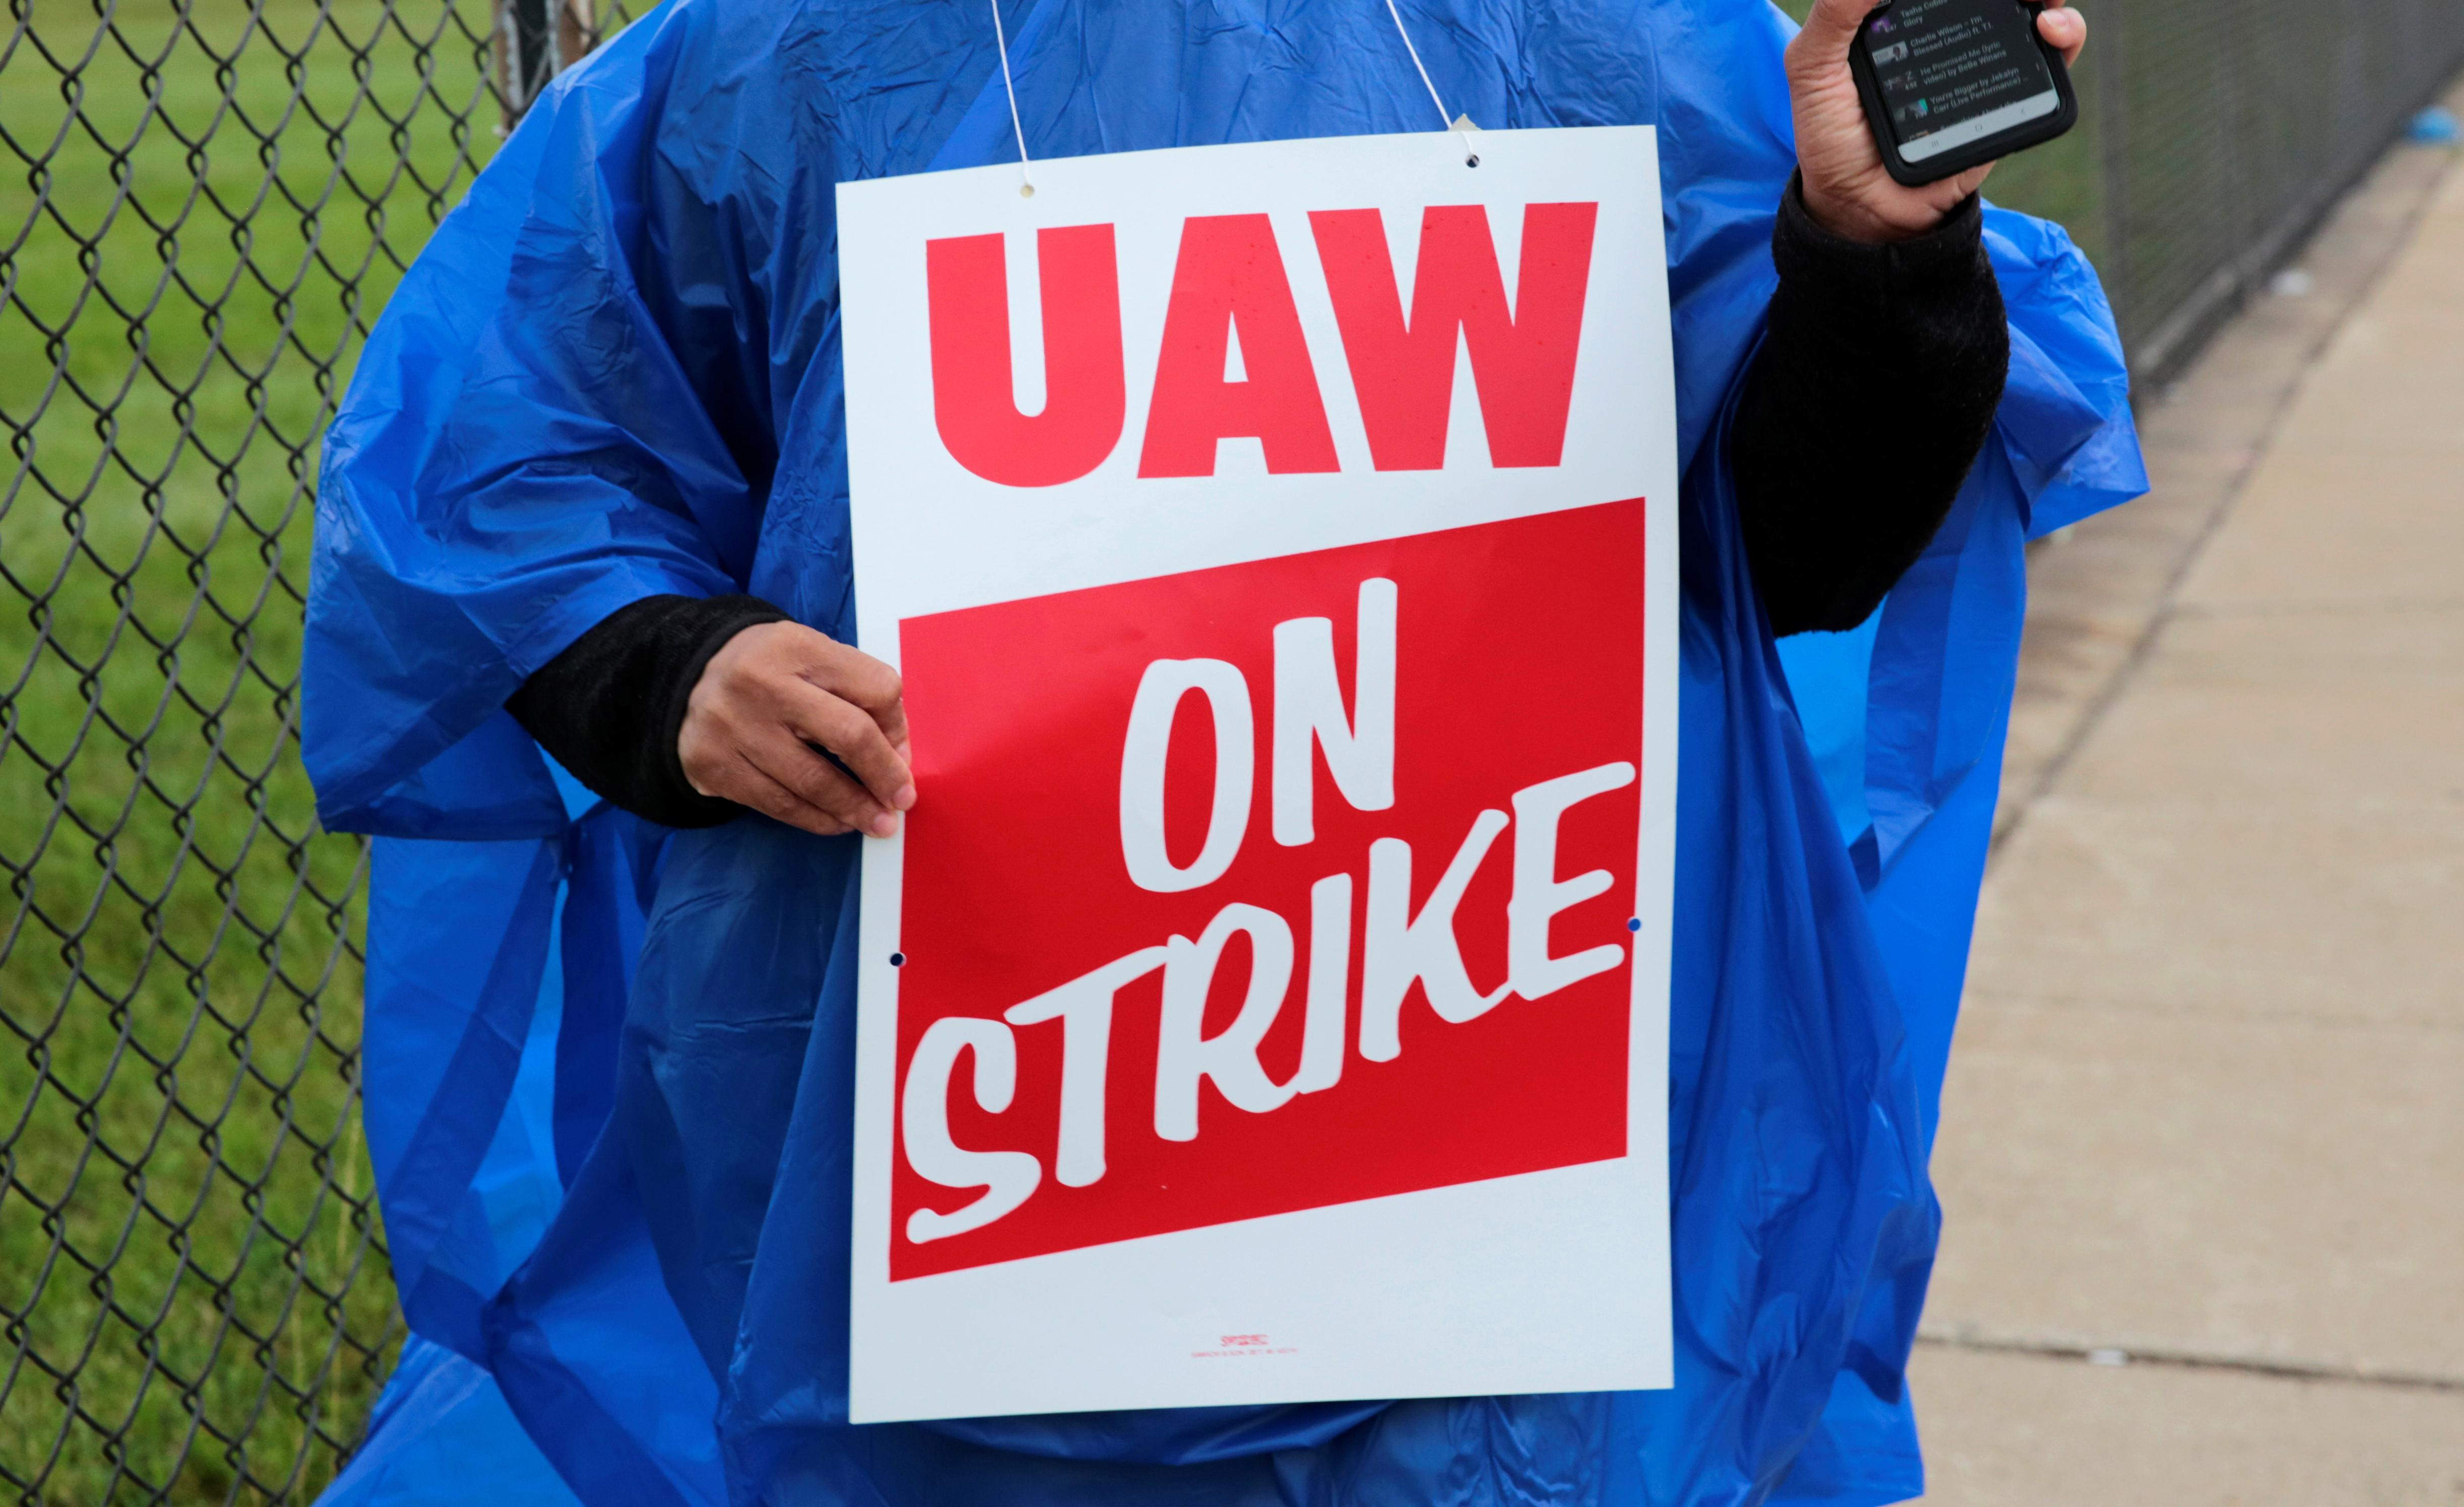 UAW workers head for picket lines in first national strike against GM since '07